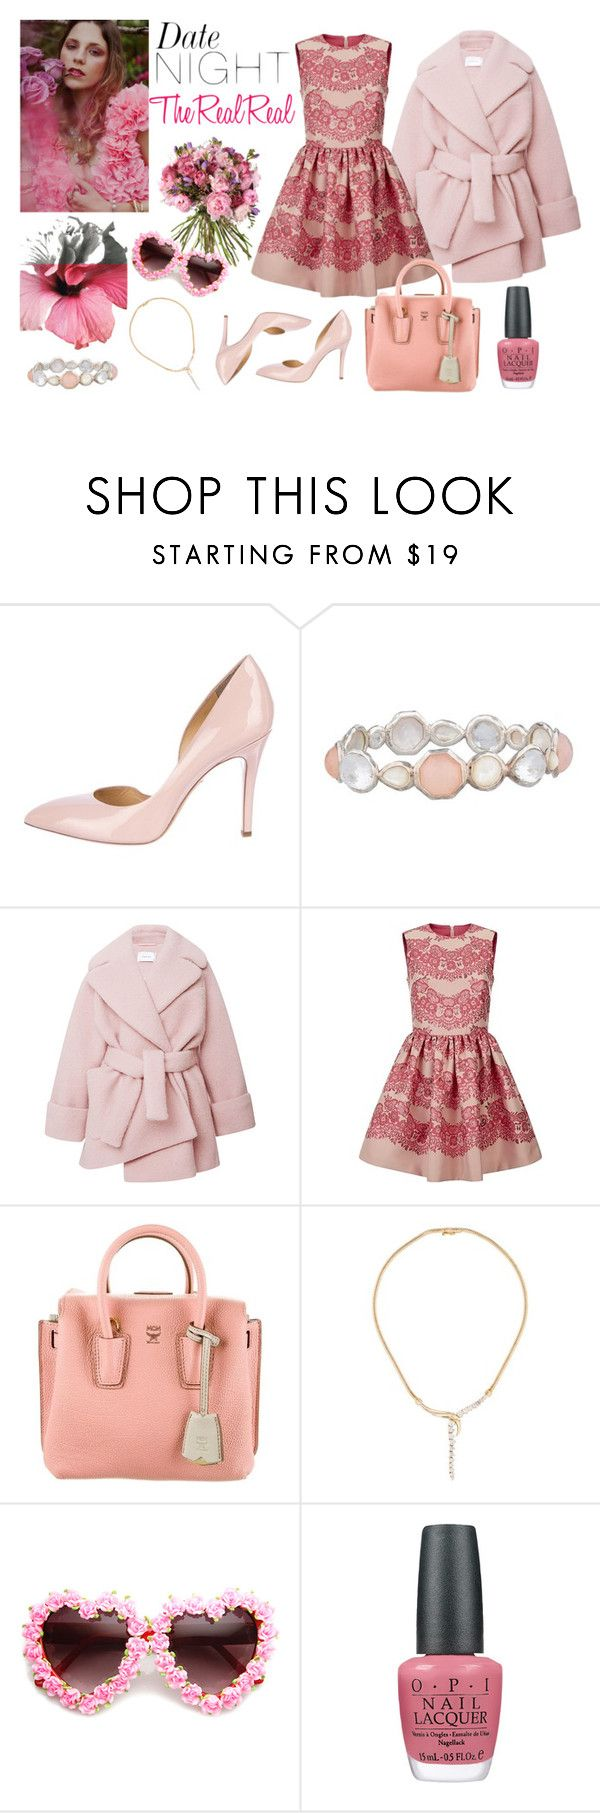 Date Night Dressing with The RealReal: Contest Entry by stylebycharlene on Polyvore featuring RED Valentino, Carven, Charlotte Olympia, MCM, Ippolita, OPI, Pink, pastel, trend and pastels